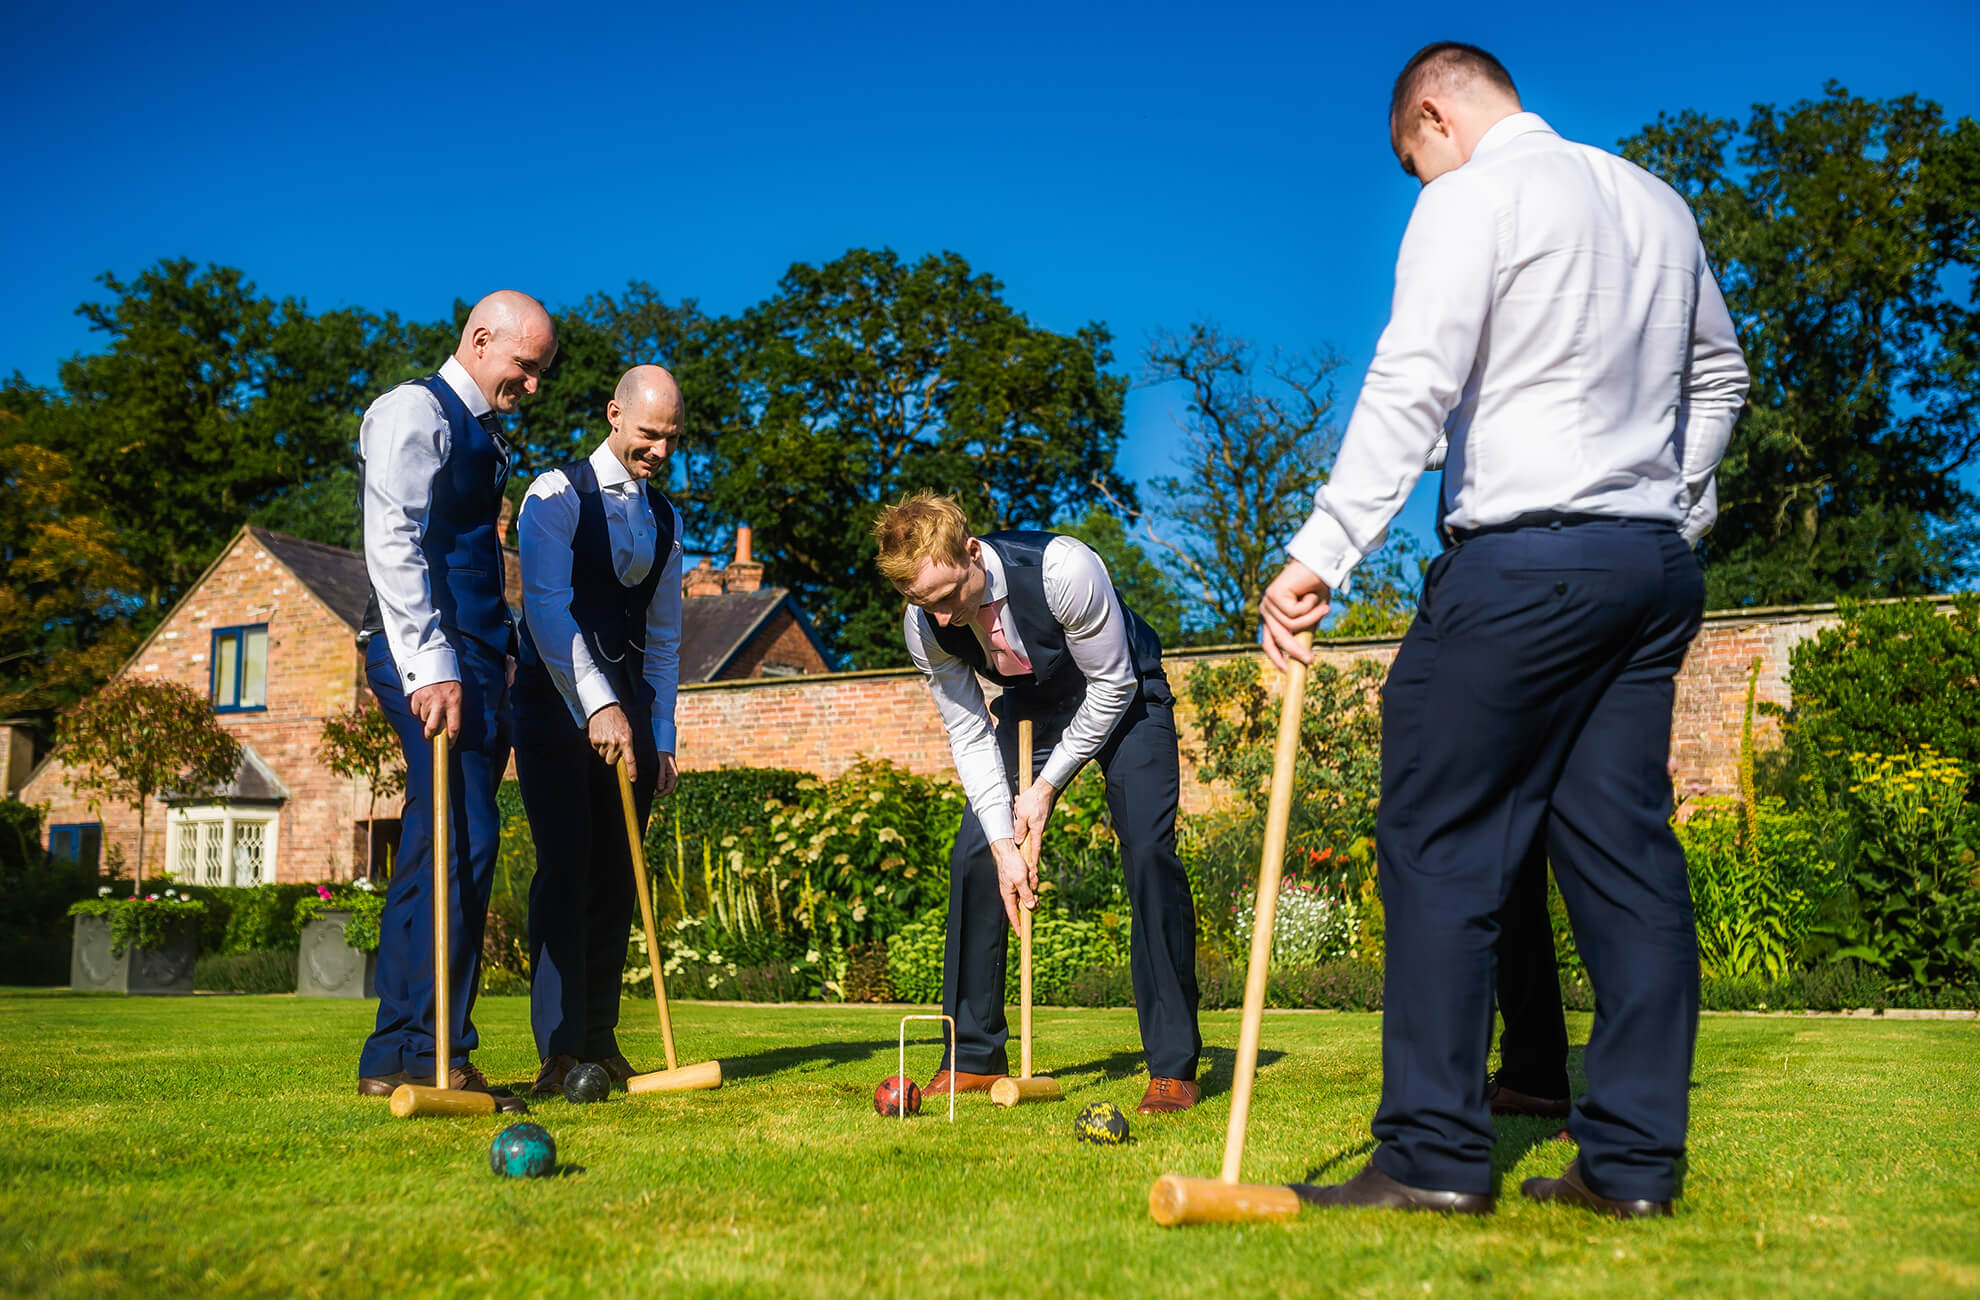 Croquet is a great wedding game for guests to enjoy in the gardens at Combermere Abbey in Cheshire